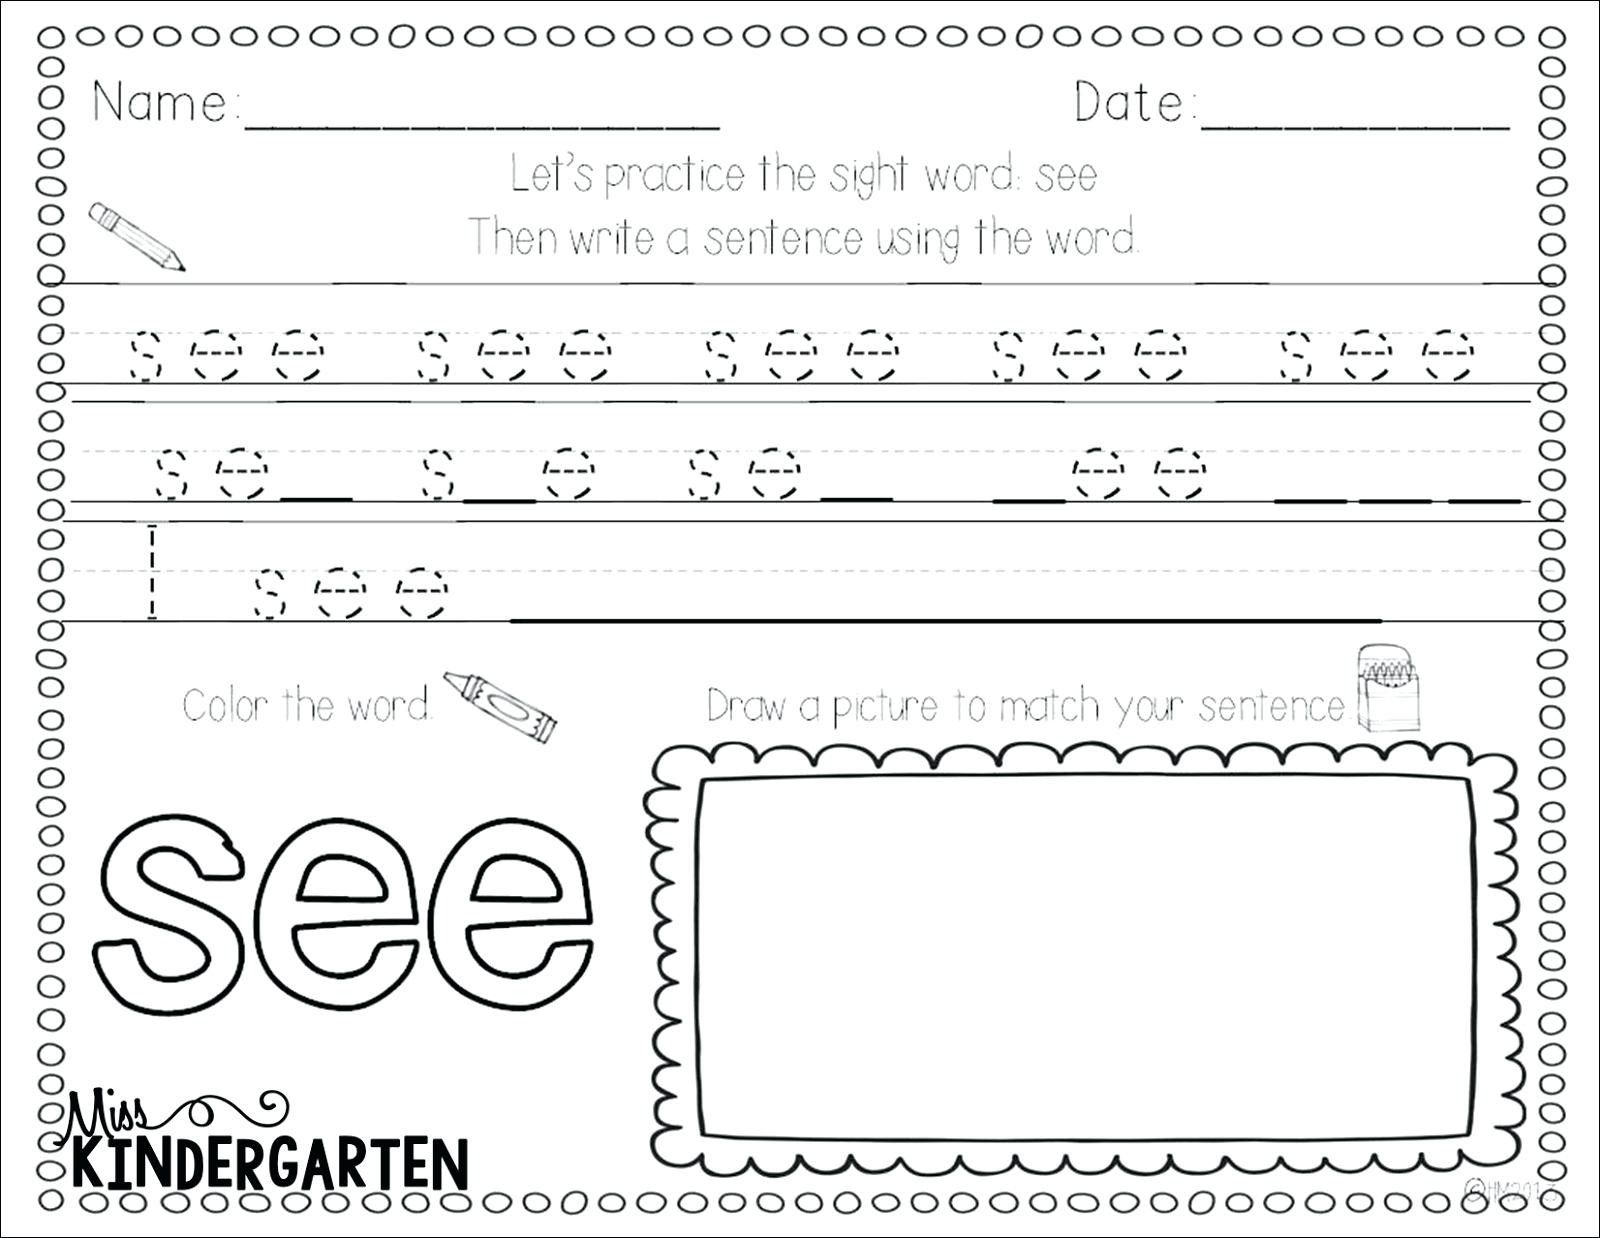 1st Grade Printable Worksheets Sight word practice